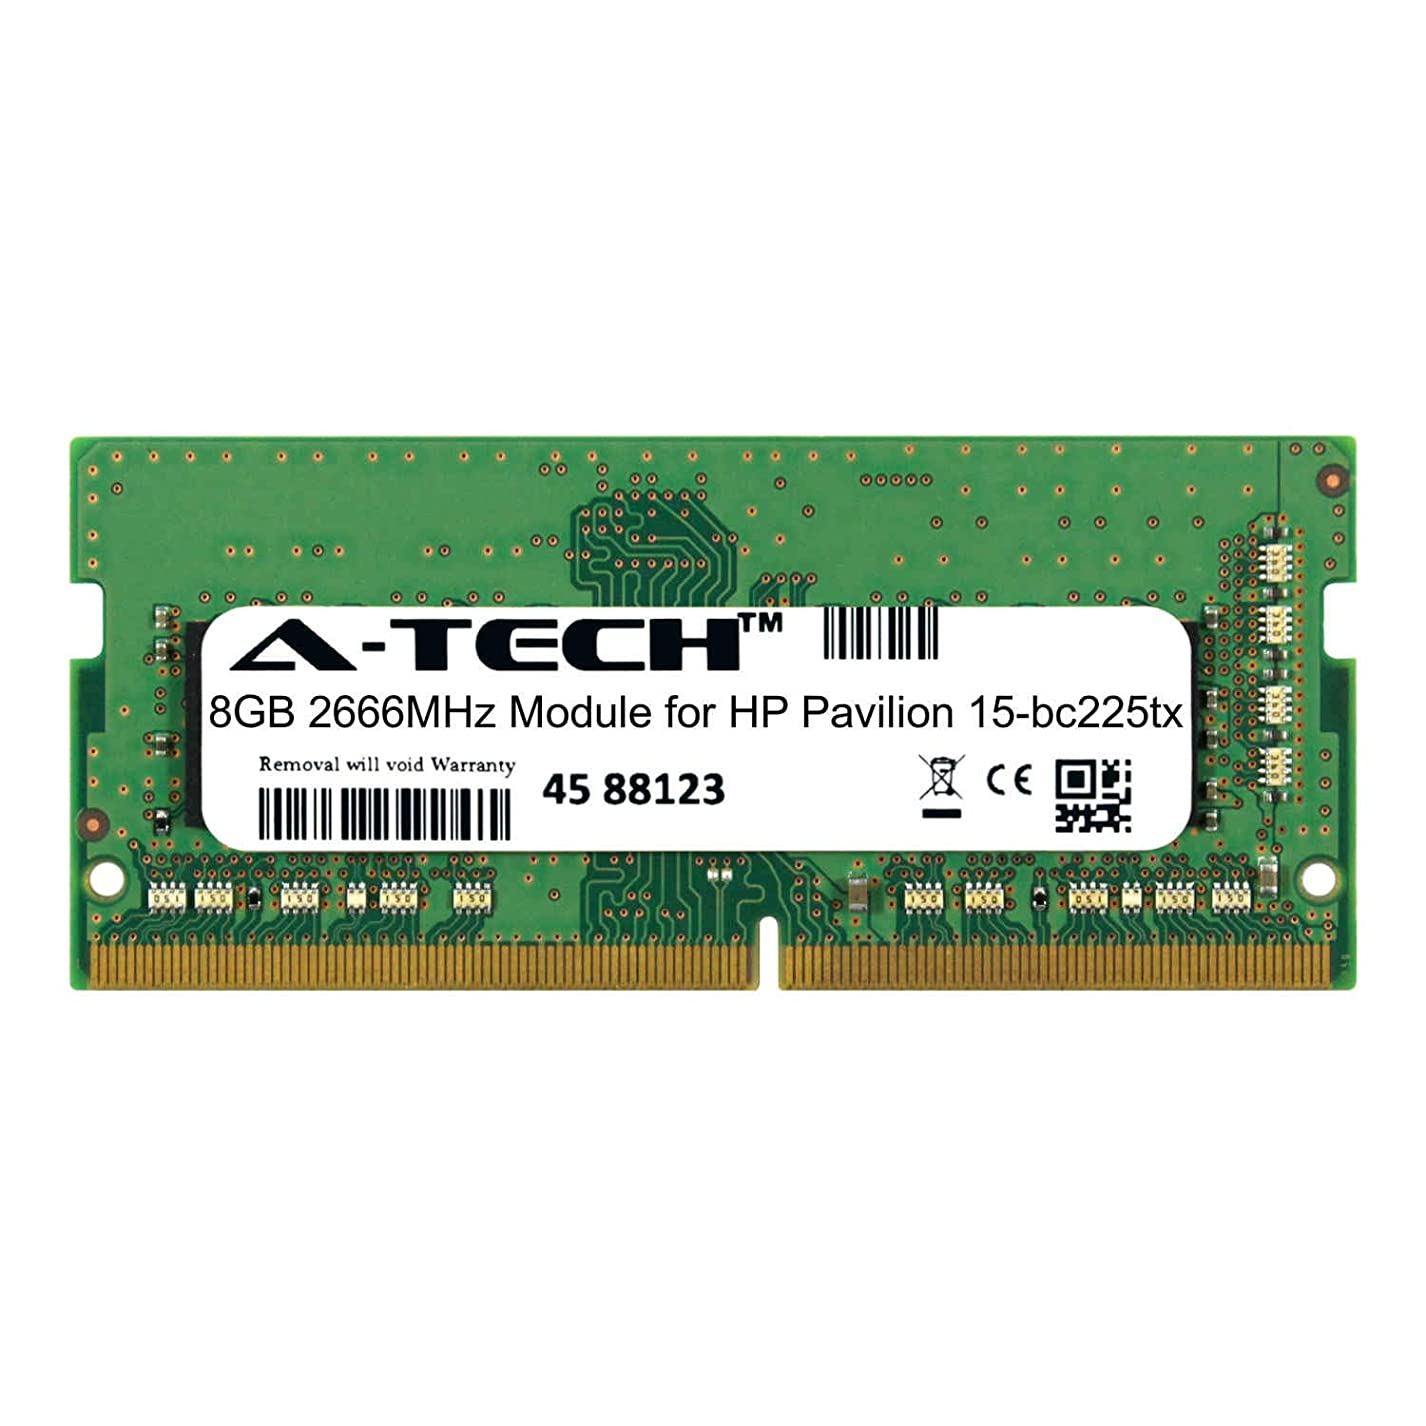 A-Tech 8GB Module for HP Pavilion 15-bc225tx Laptop & Notebook Compatible DDR4 2666Mhz Memory Ram (ATMS309194A25978X1) qje589314045807